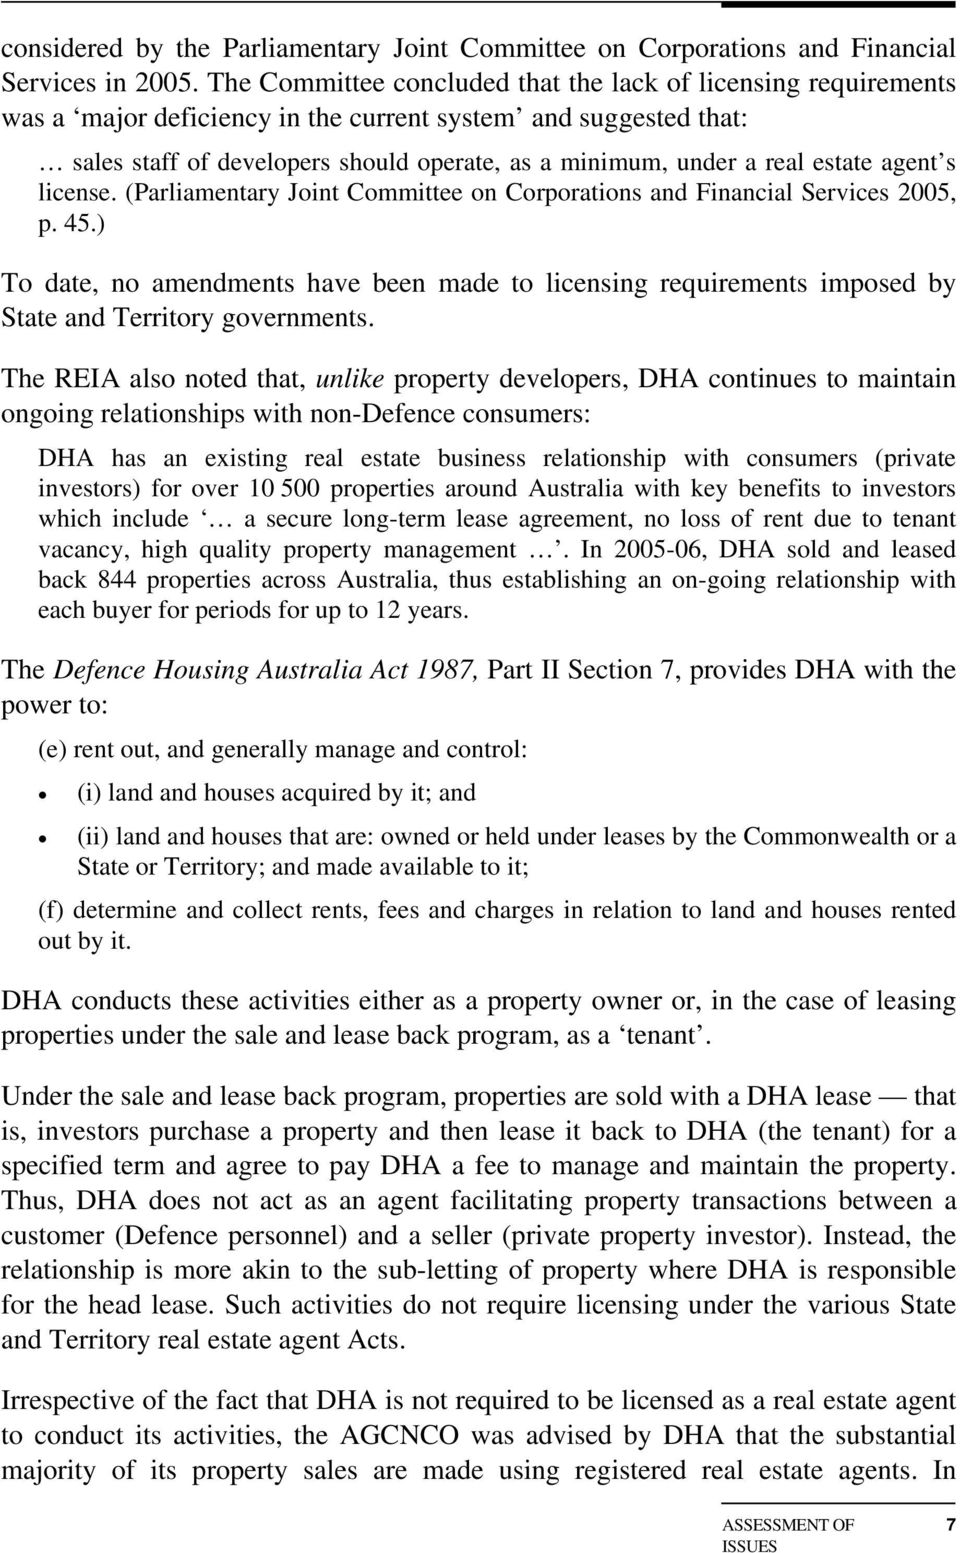 estate agent s license. (Parliamentary Joint Committee on Corporations and Financial Services 2005, p. 45.